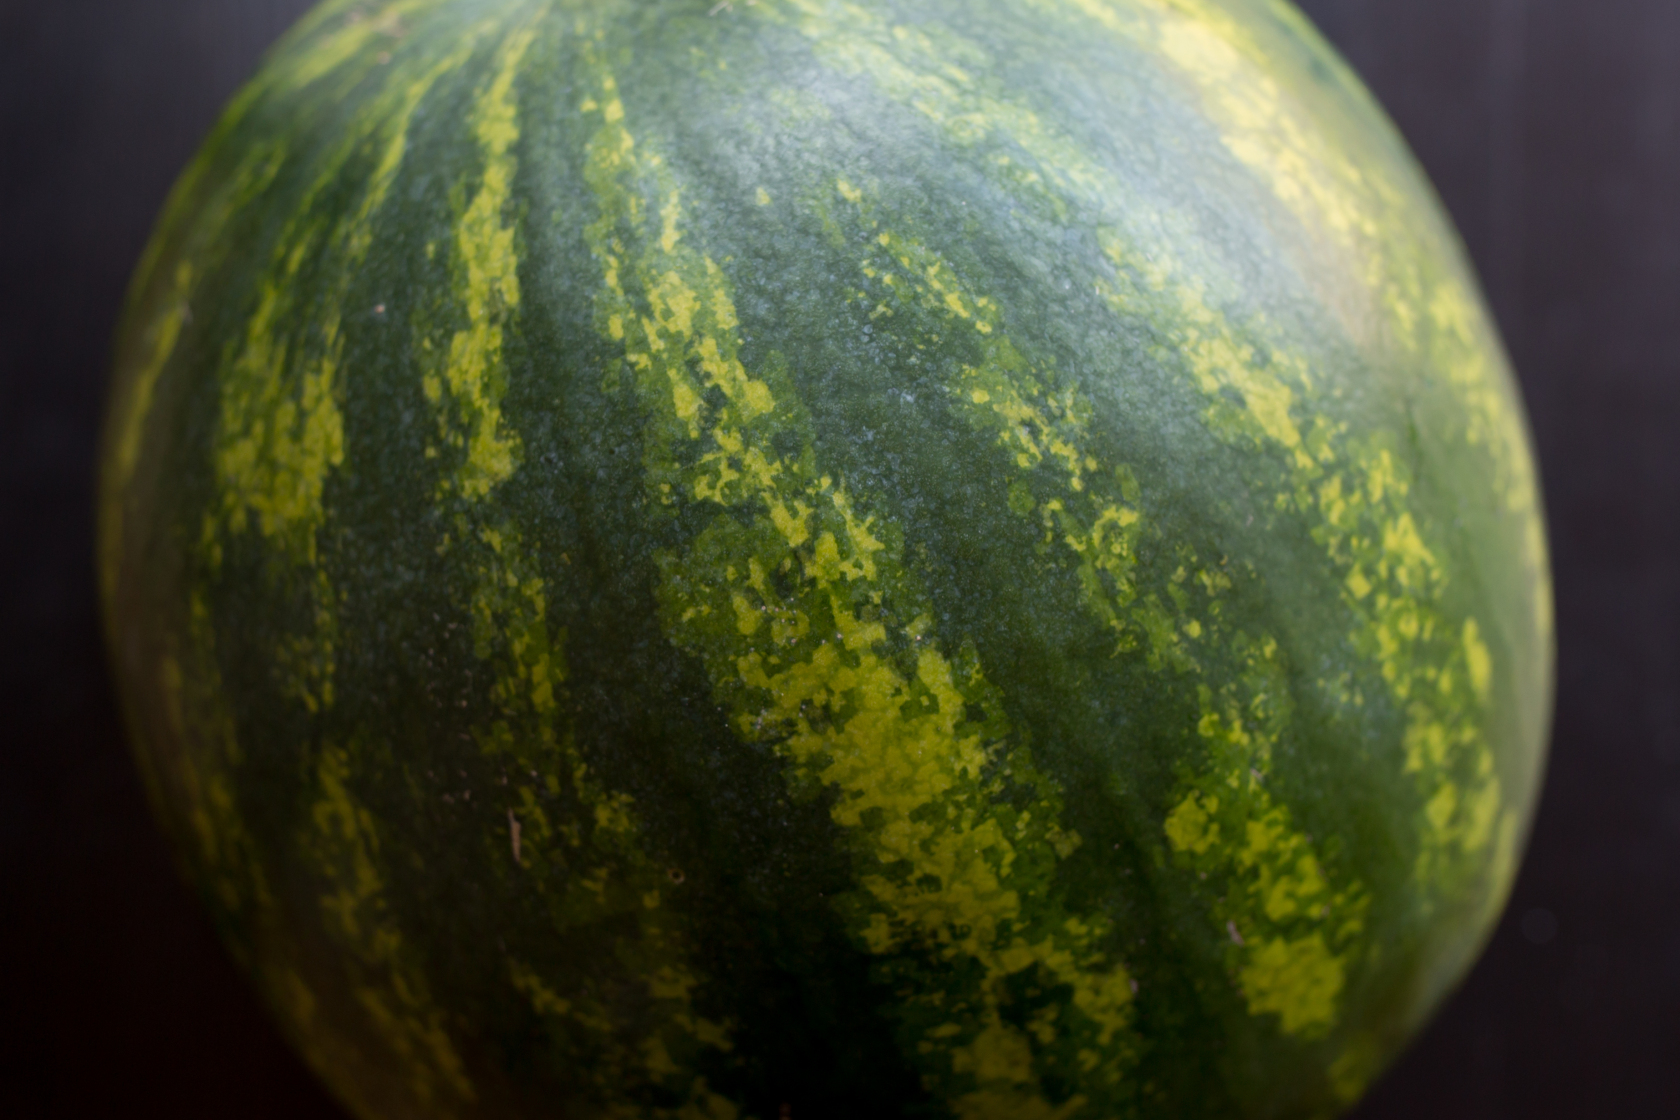 Watermelon is 30% rind, 70% flesh, 92% water and 100% edible